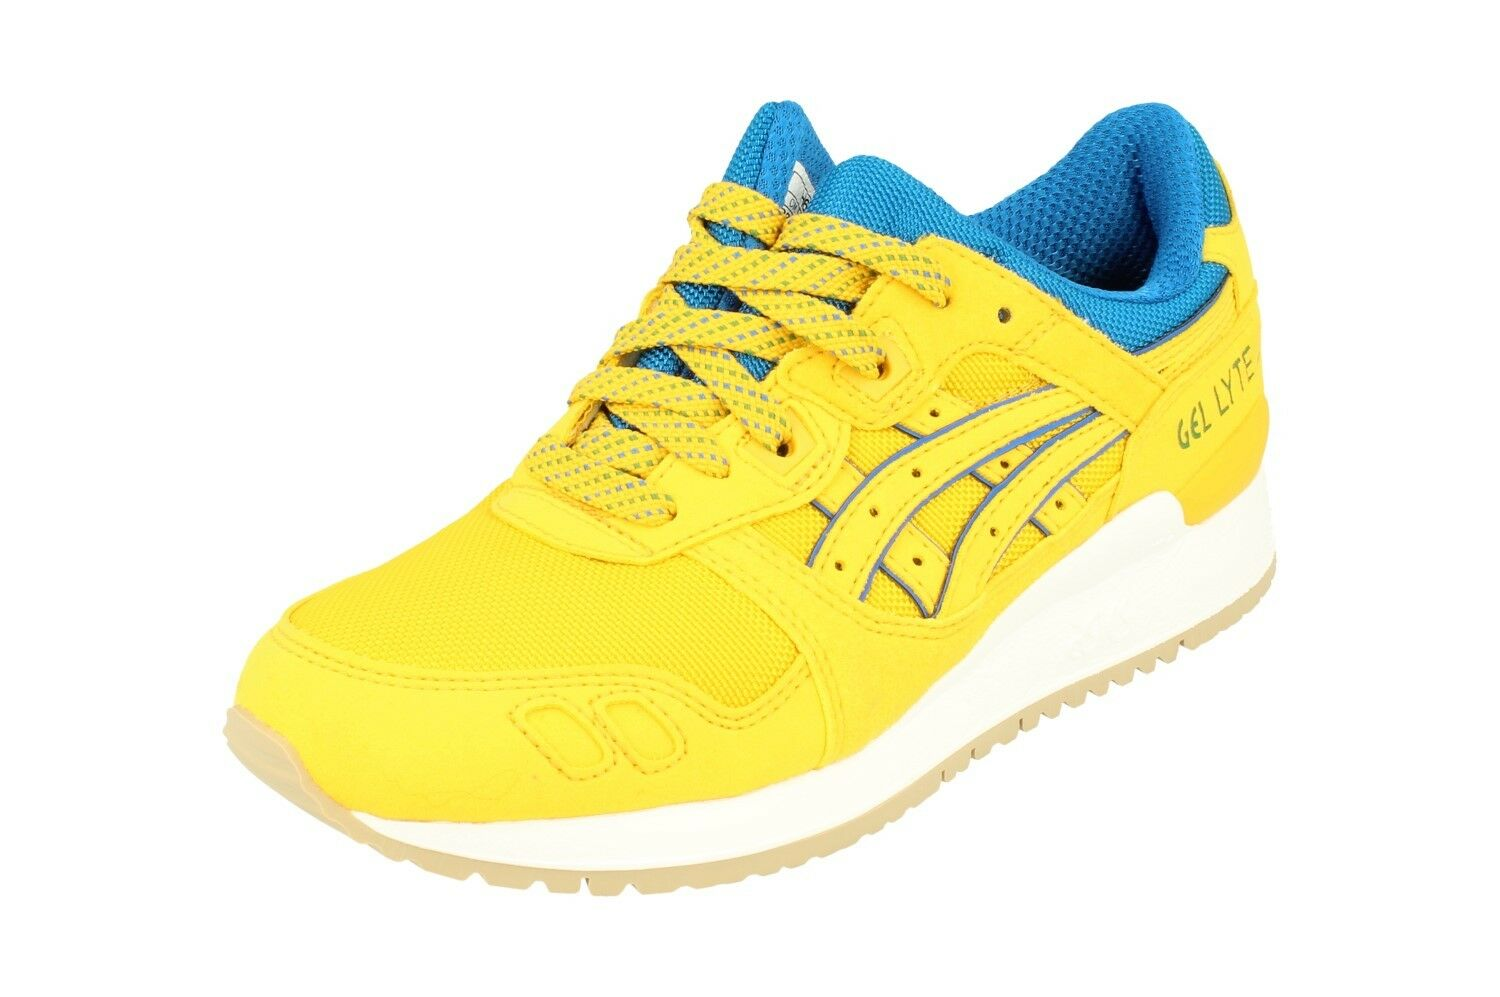 Asics Gel-Lyte Hombre Para Correr Tenis H6X1N 0404 III Tenis Zapatos